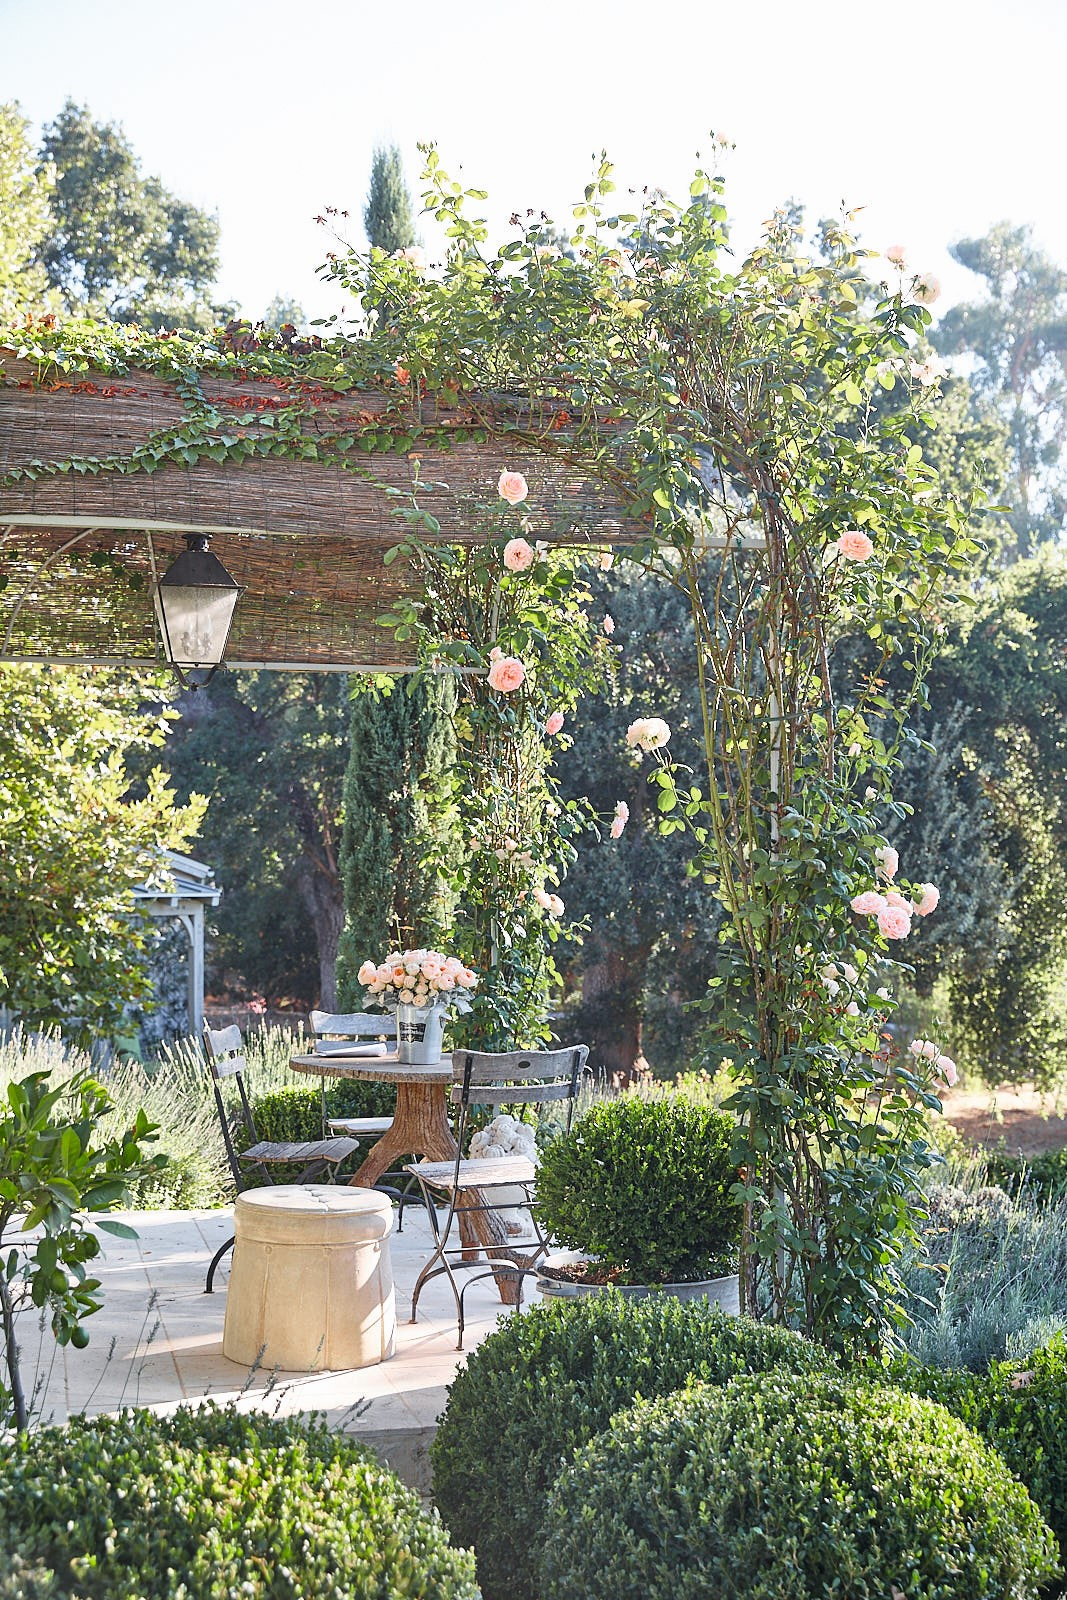 Patina Living photo of outdoor lush garden and patio with rustic modern farmhouse style at Patina Farm. Brooke Giannetti & Steve Giannetti designed the beautiful property. Photo by Victora Pearson.